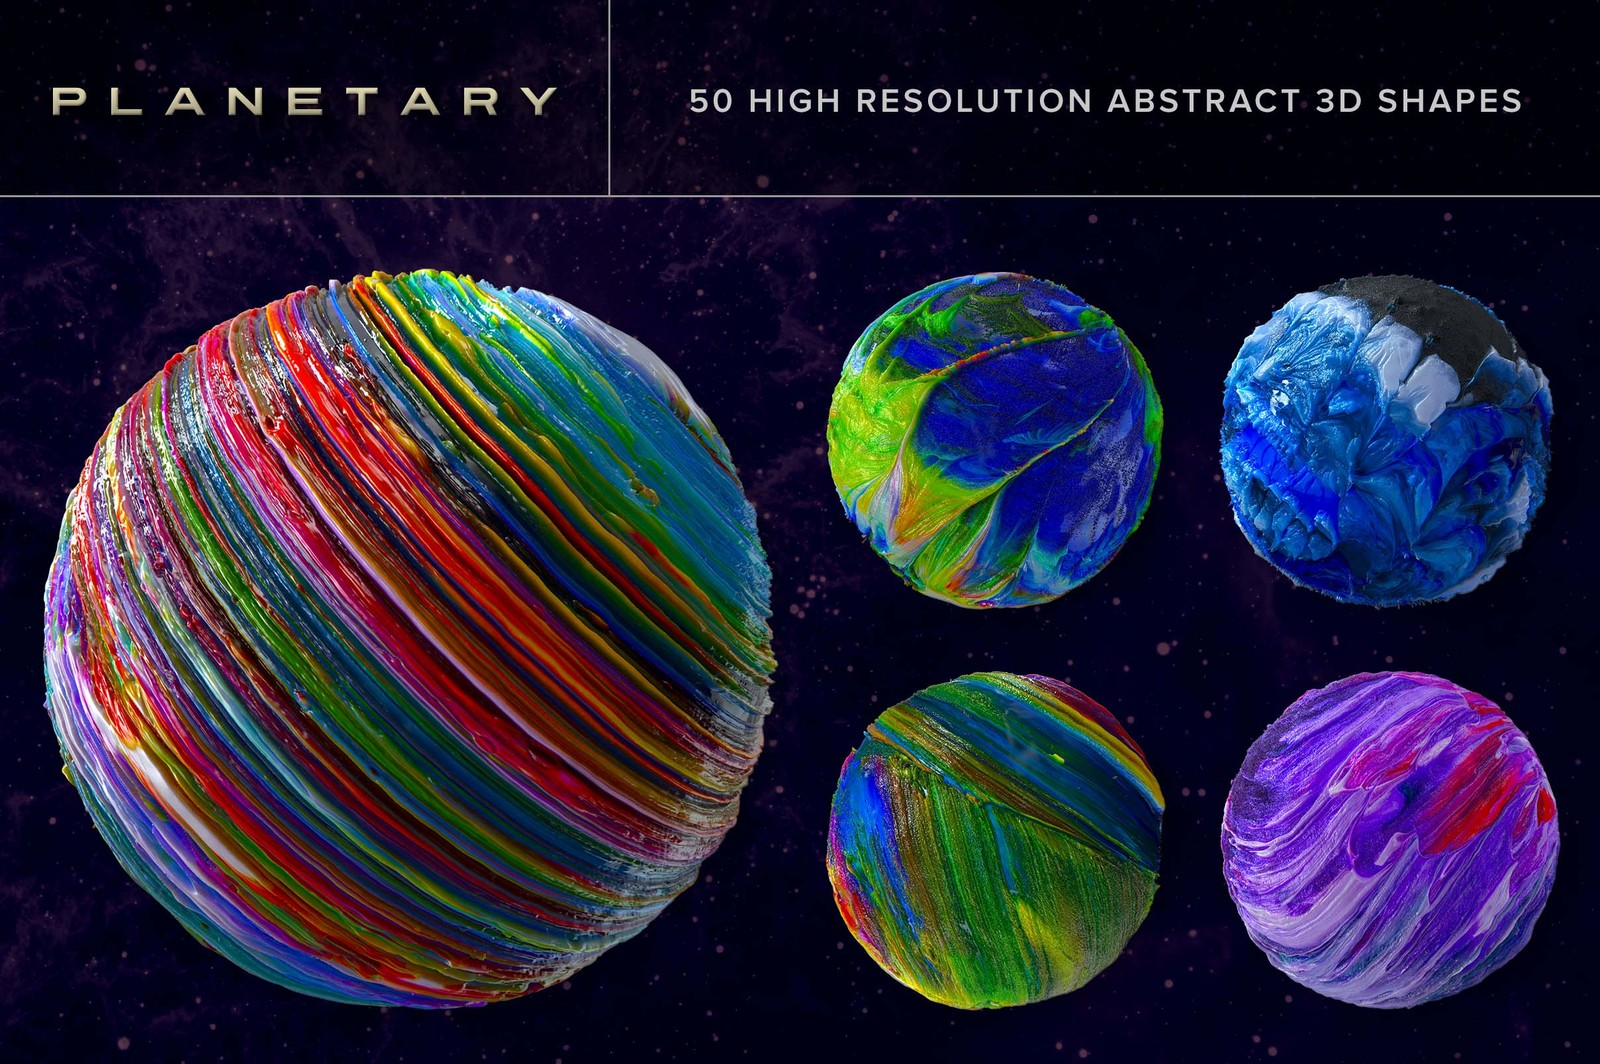 Planetary: 50 Abstract 3D Shapes